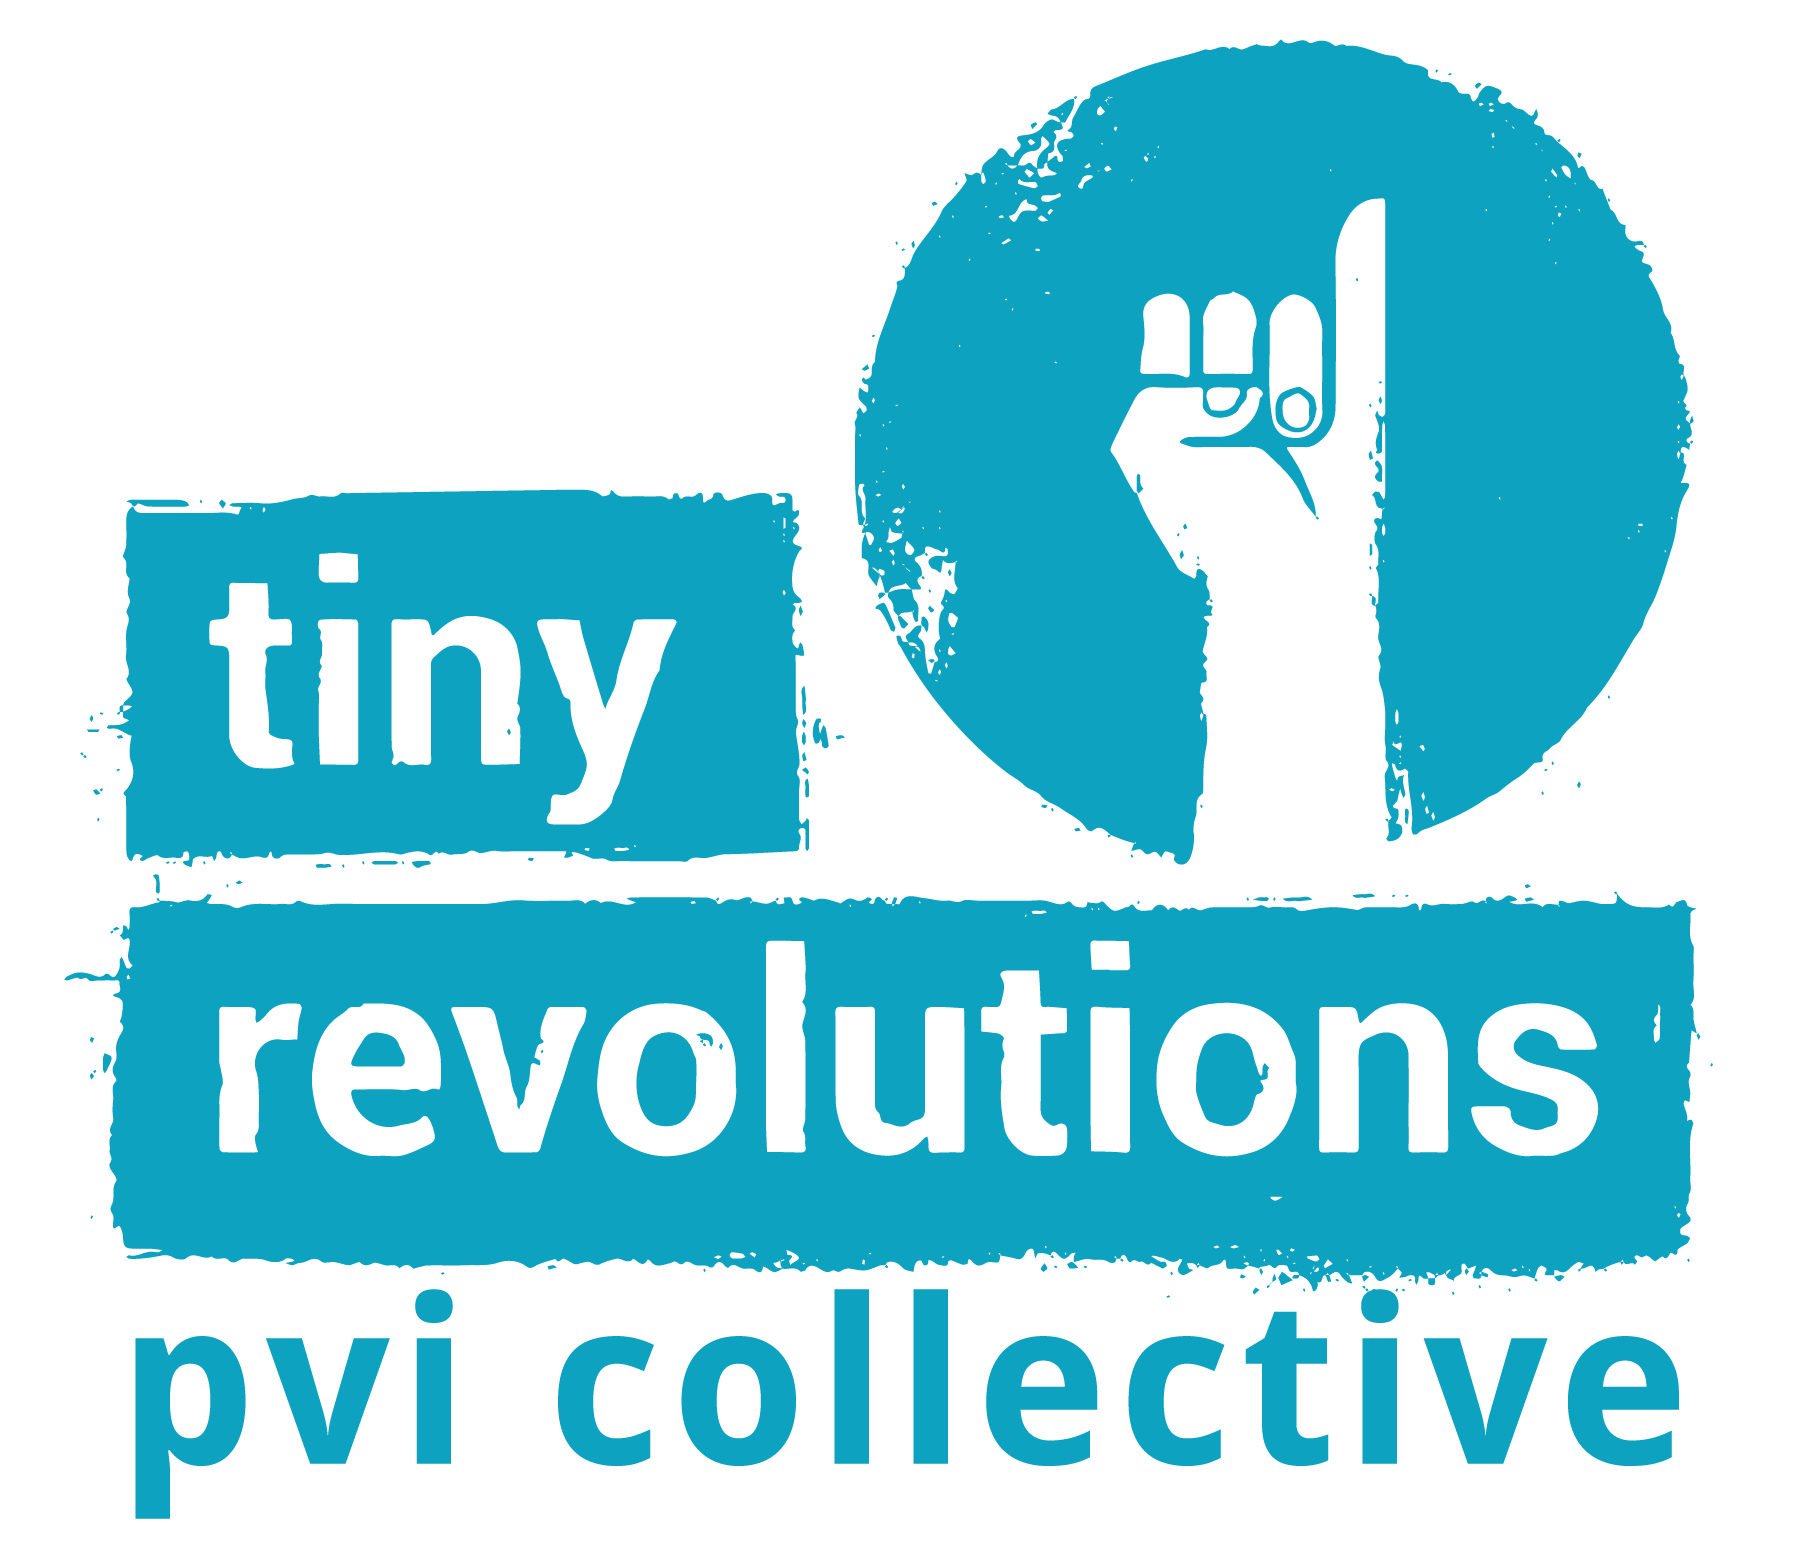 tiny revolutions | pvi collective